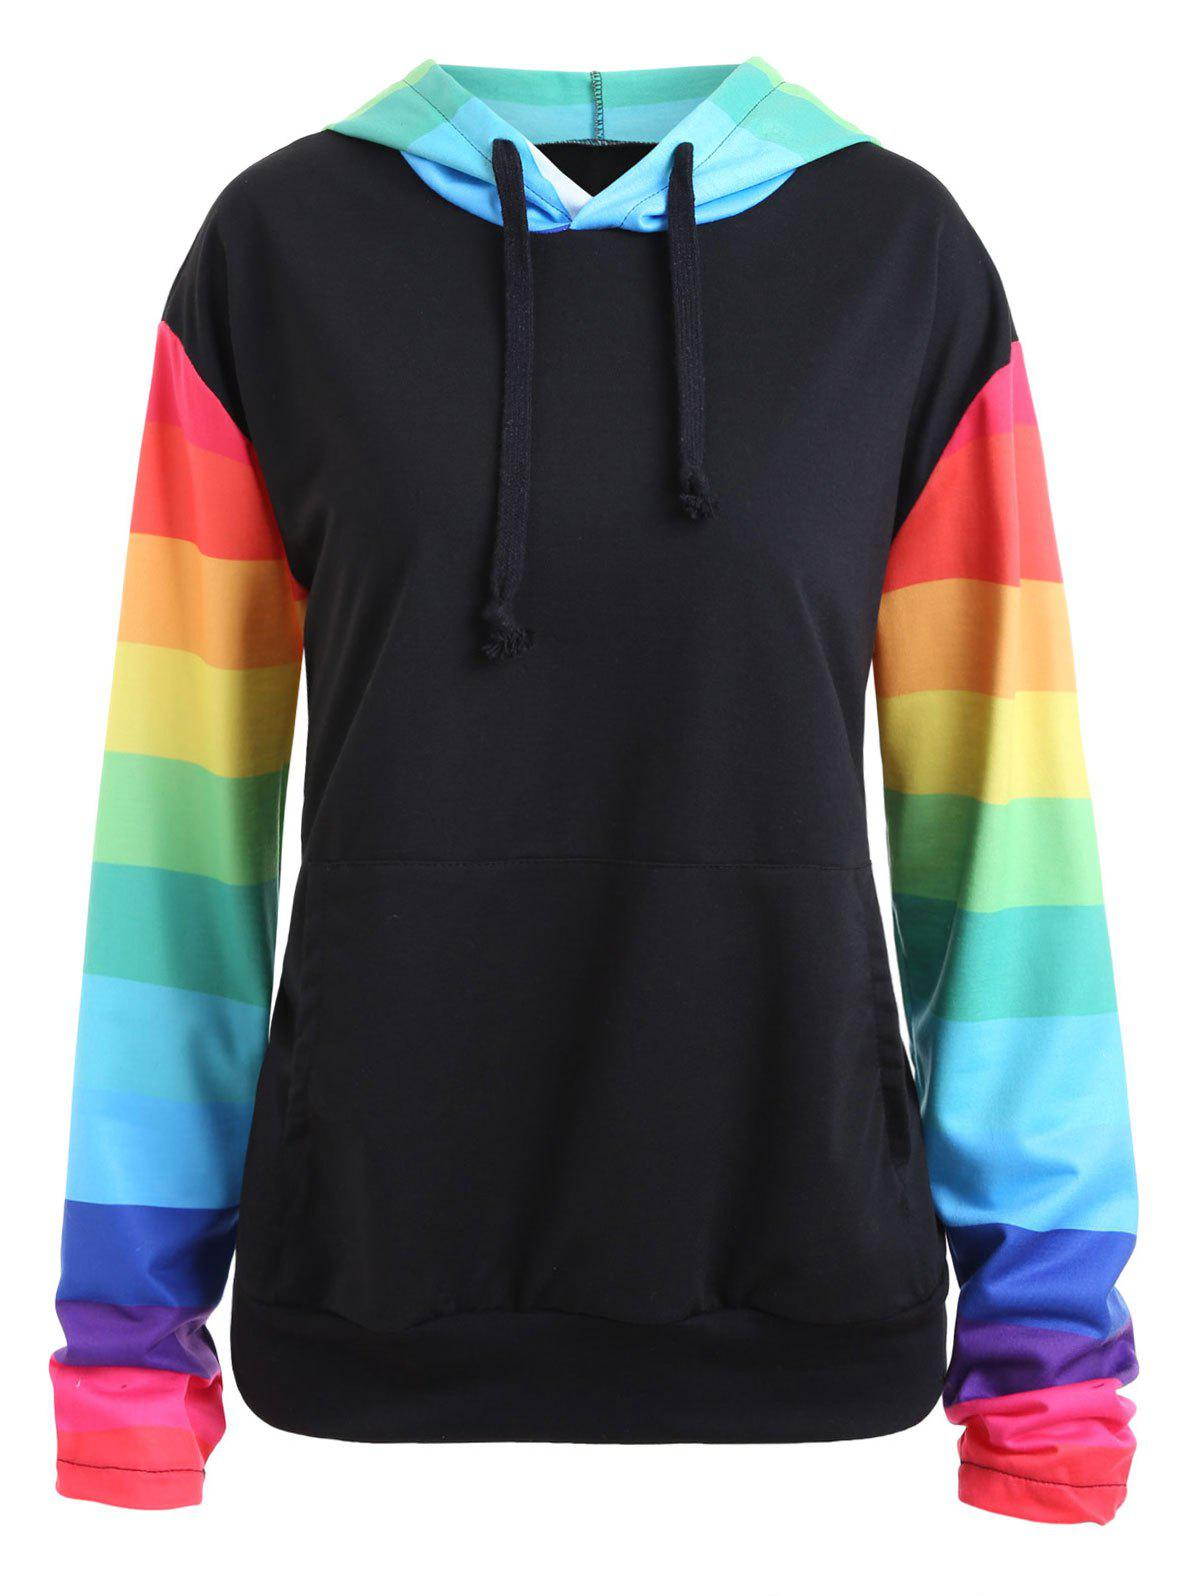 Plus Size Raglan Sleeve Rainbow Stripe  Kangaroo HoodieWOMEN<br><br>Size: 2XL; Color: BLACK; Material: Cotton Blend,Polyester; Shirt Length: Regular; Sleeve Length: Full; Style: Fashion; Pattern Style: Others,Striped; Embellishment: Front Pocket; Season: Fall,Winter; Weight: 0.4500kg; Package Contents: 1 x Hoodie;